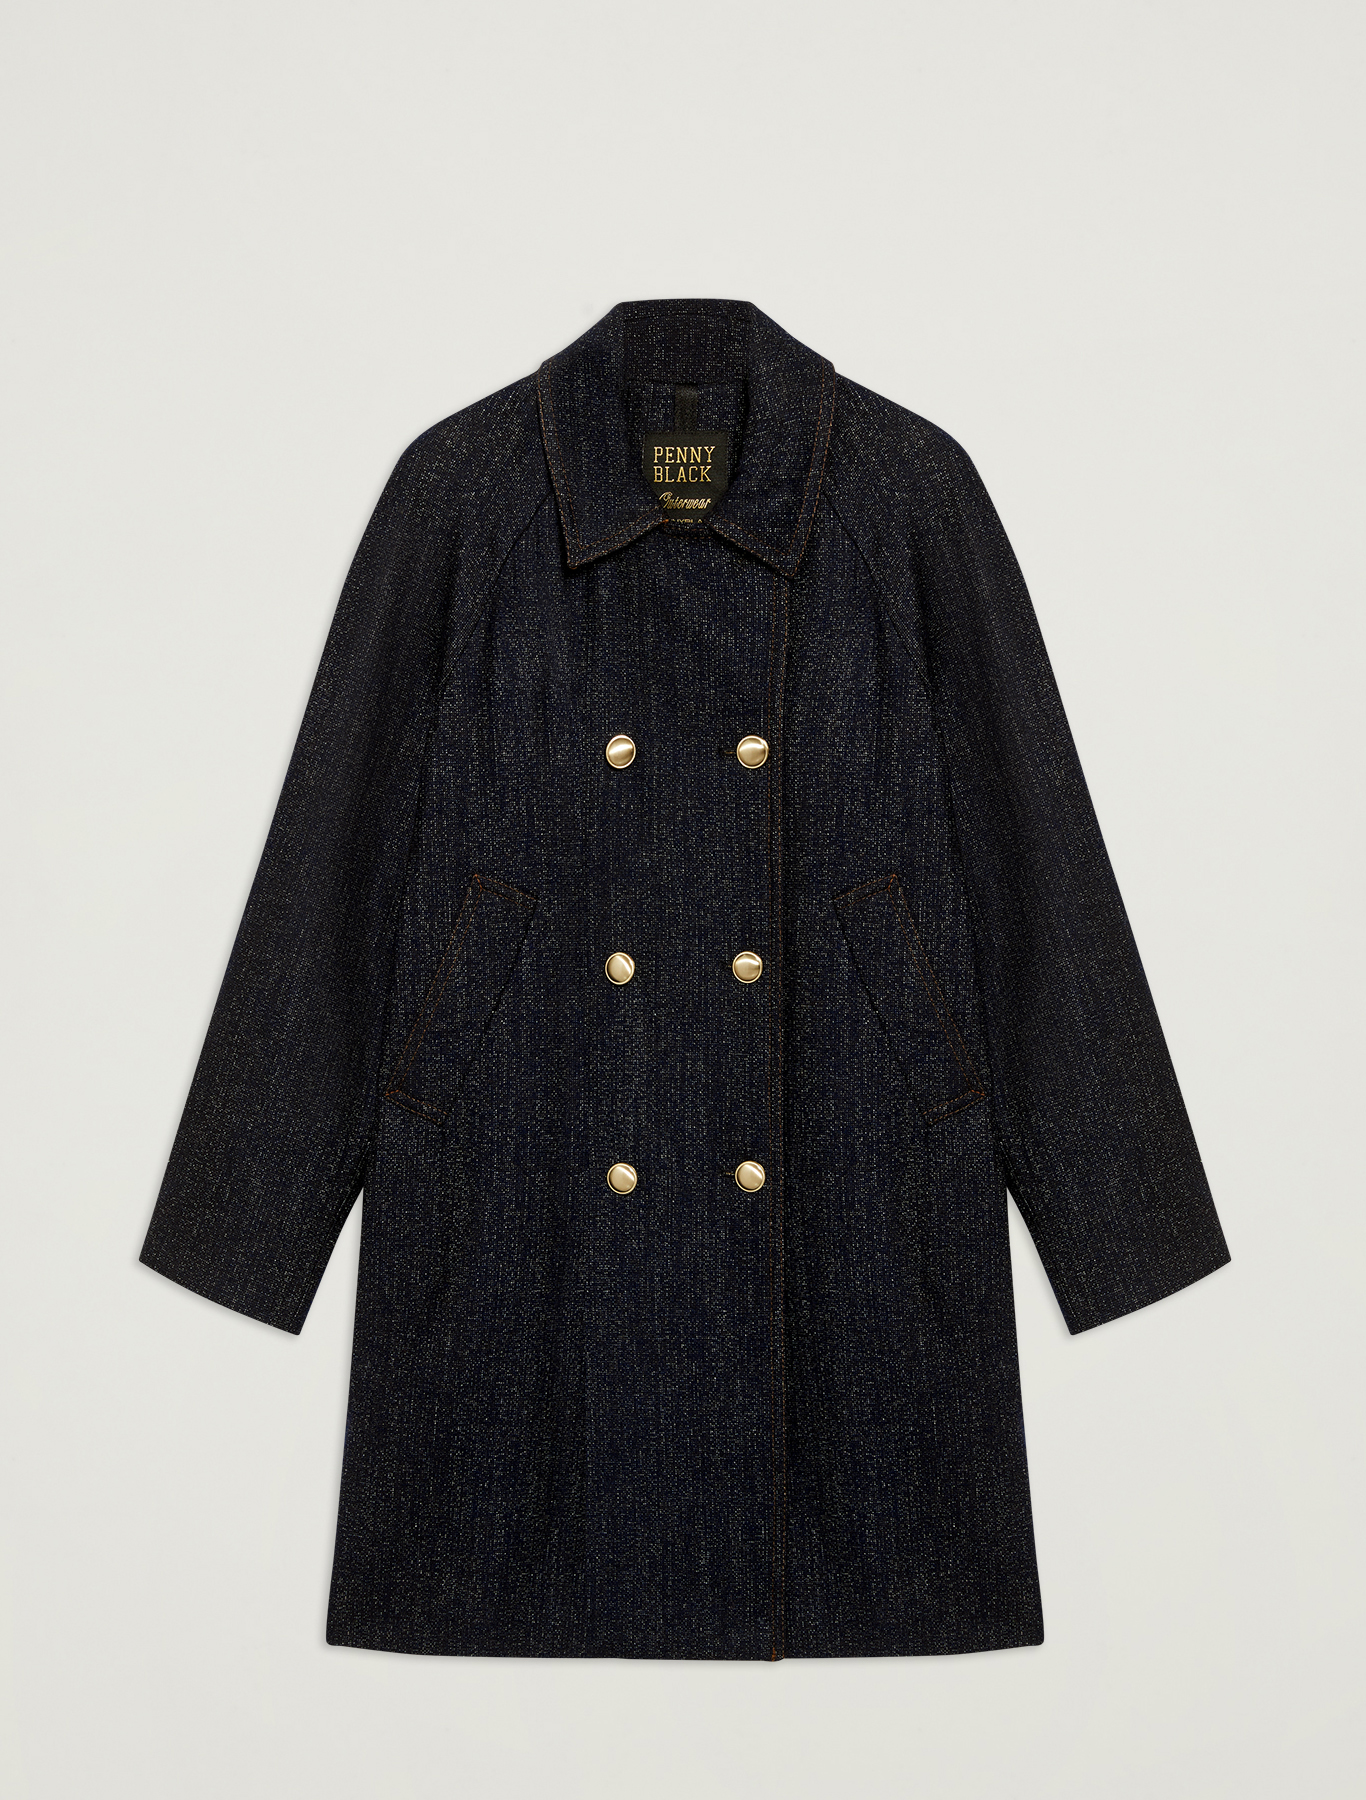 Double-breasted coat with denim effect - navy blue pattern - pennyblack